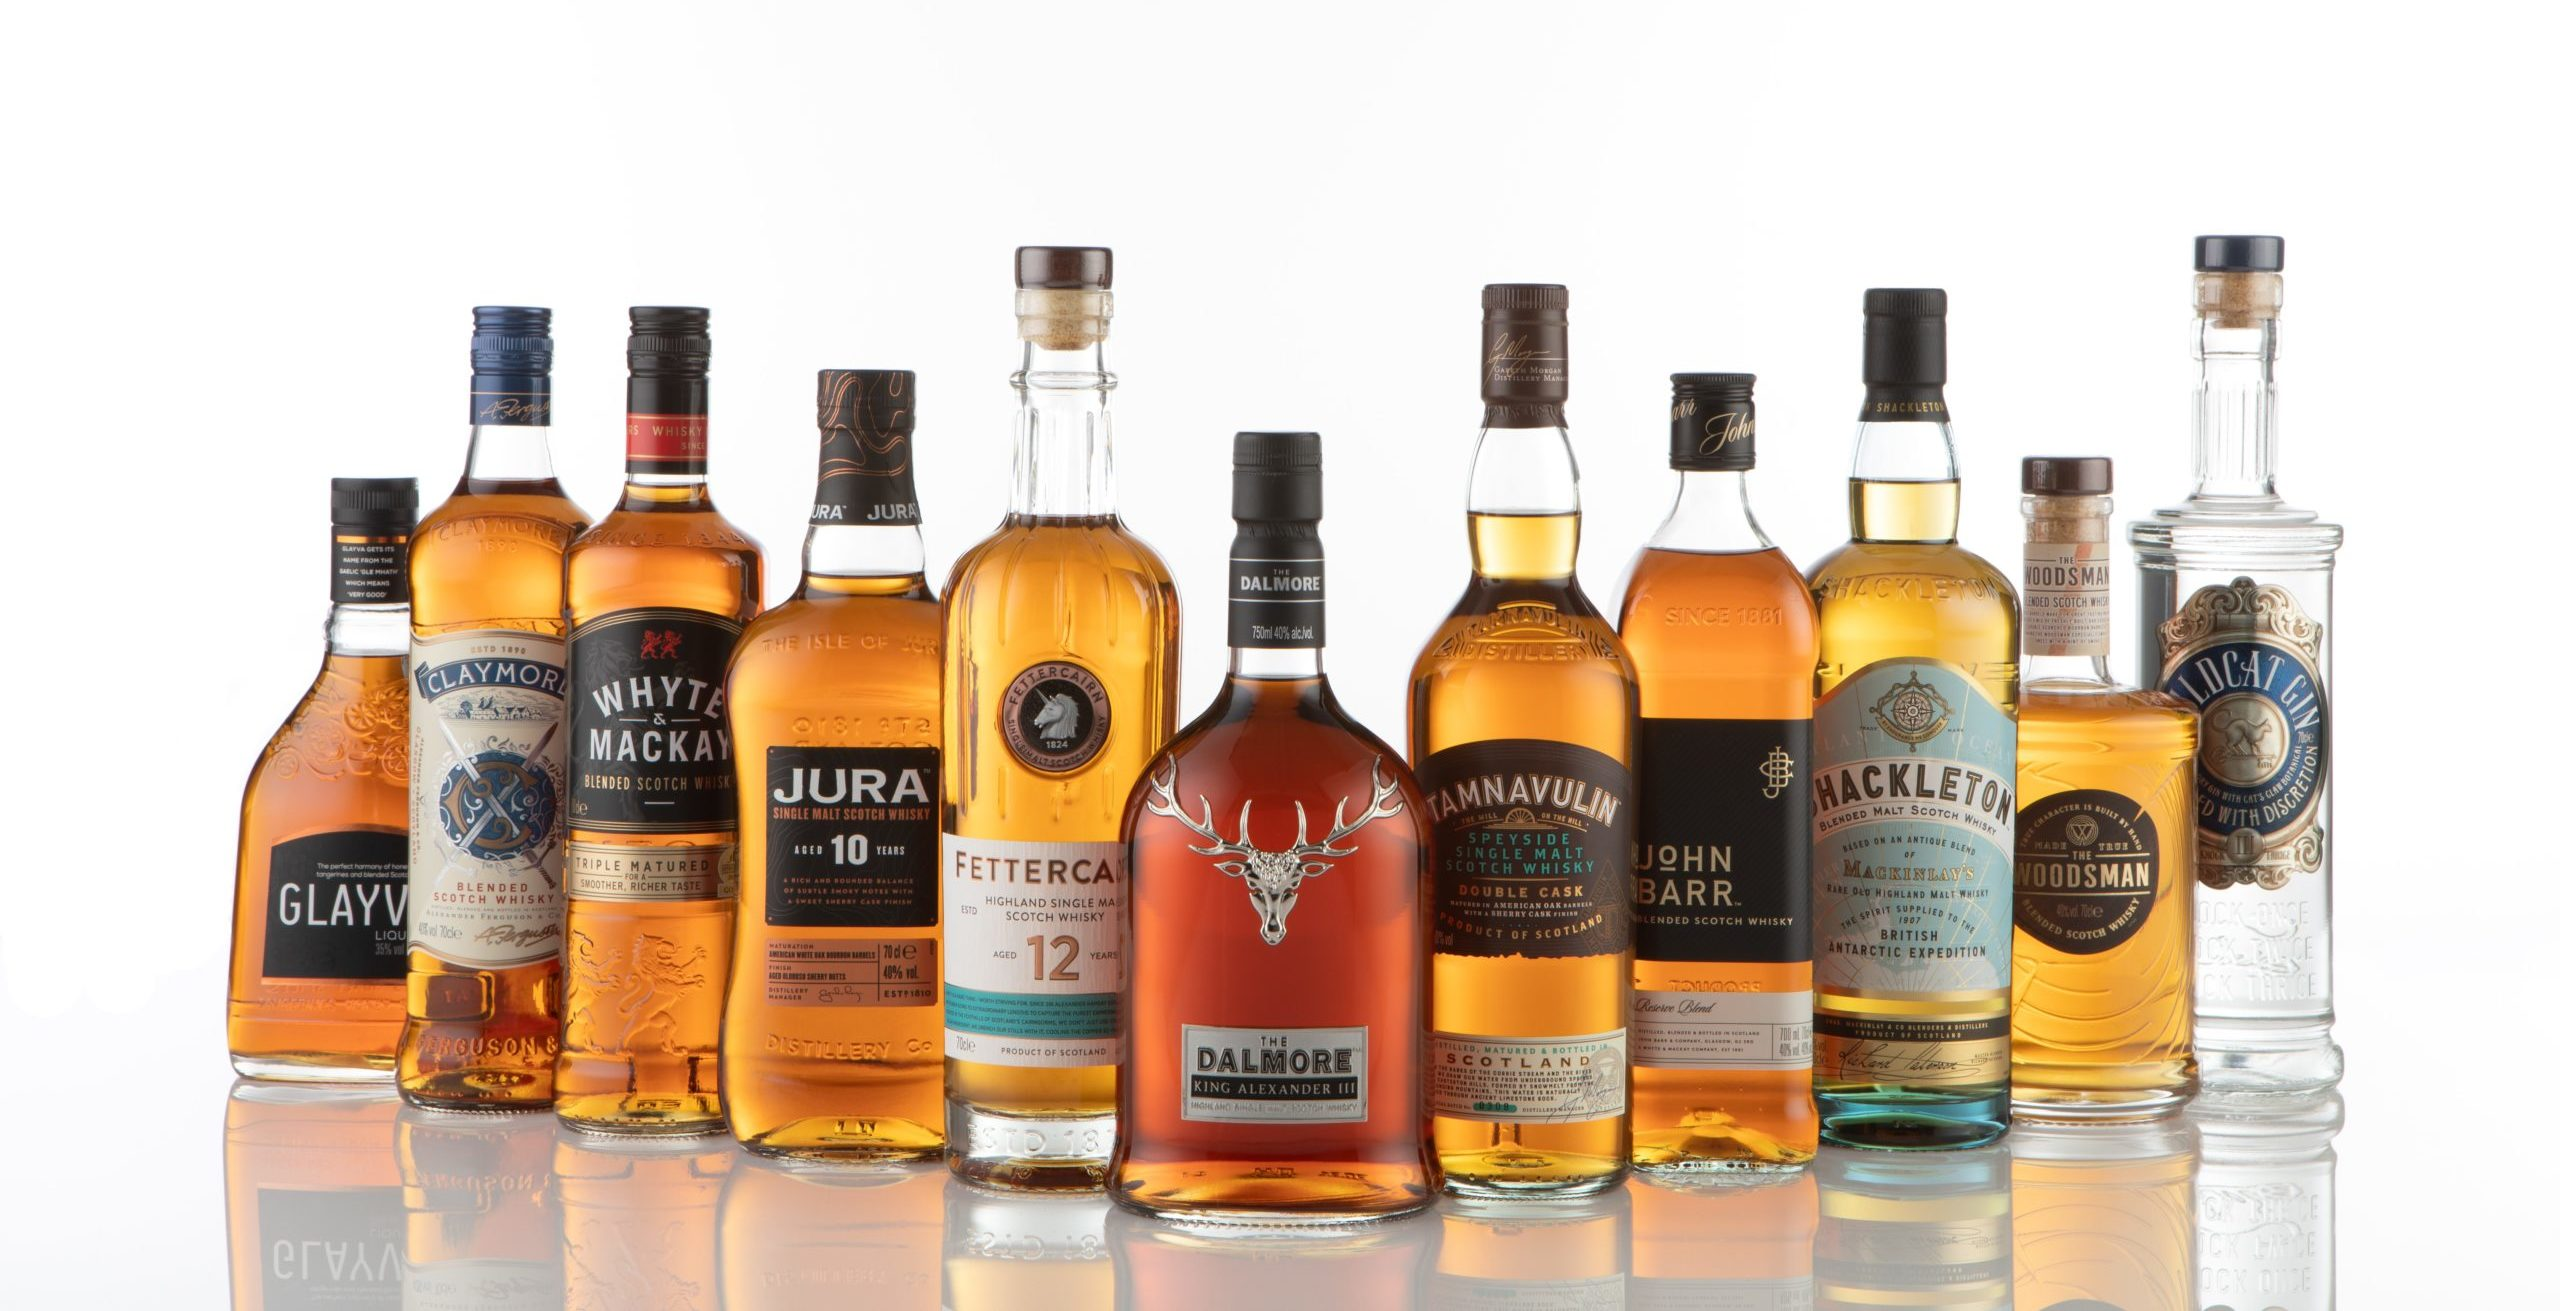 European collection of whisky